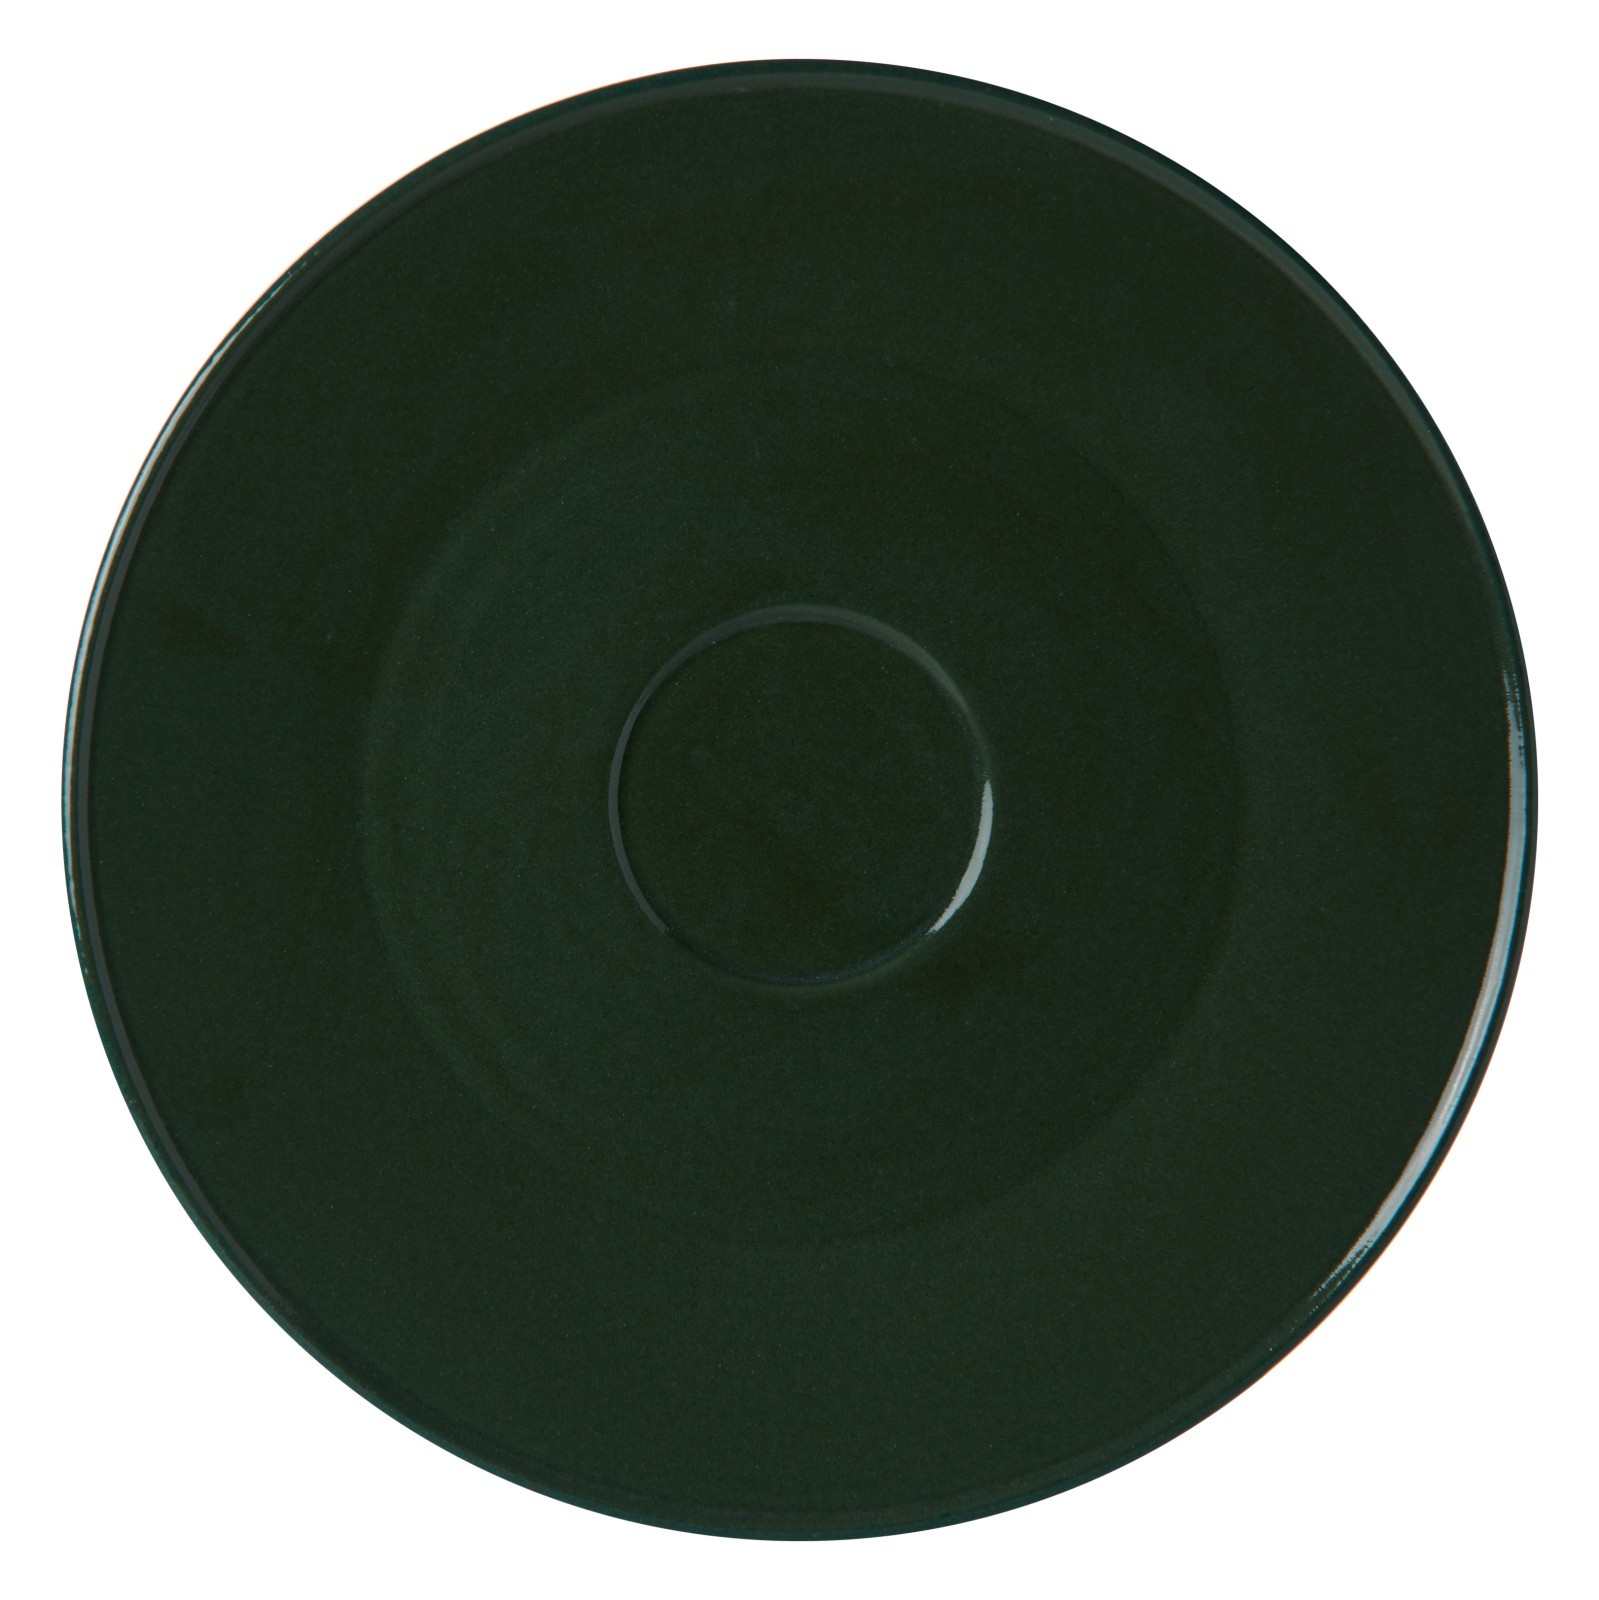 Unison Ceramic Big Plate Teal